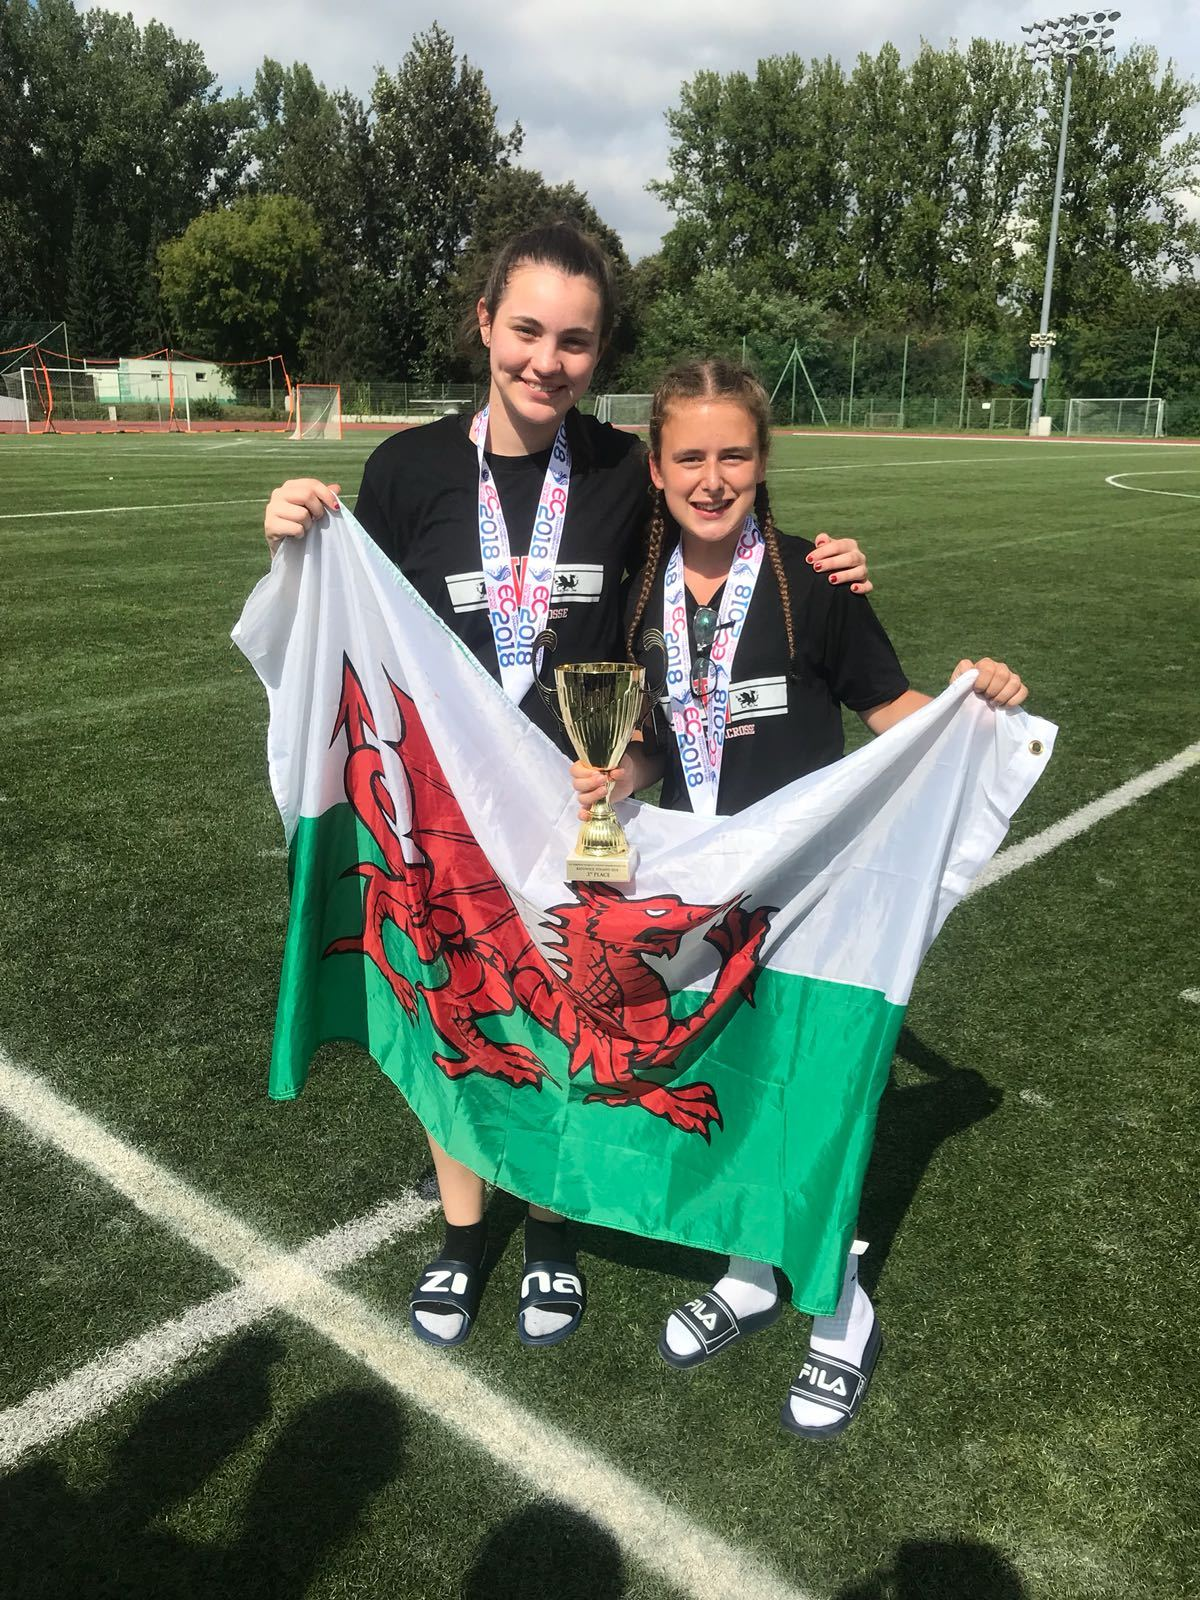 : Herefordshire's Bethan Morgan (left) and Madison Jones impressed for Wales at the European Women's Under-20s Lacrosse Championships in Poland.